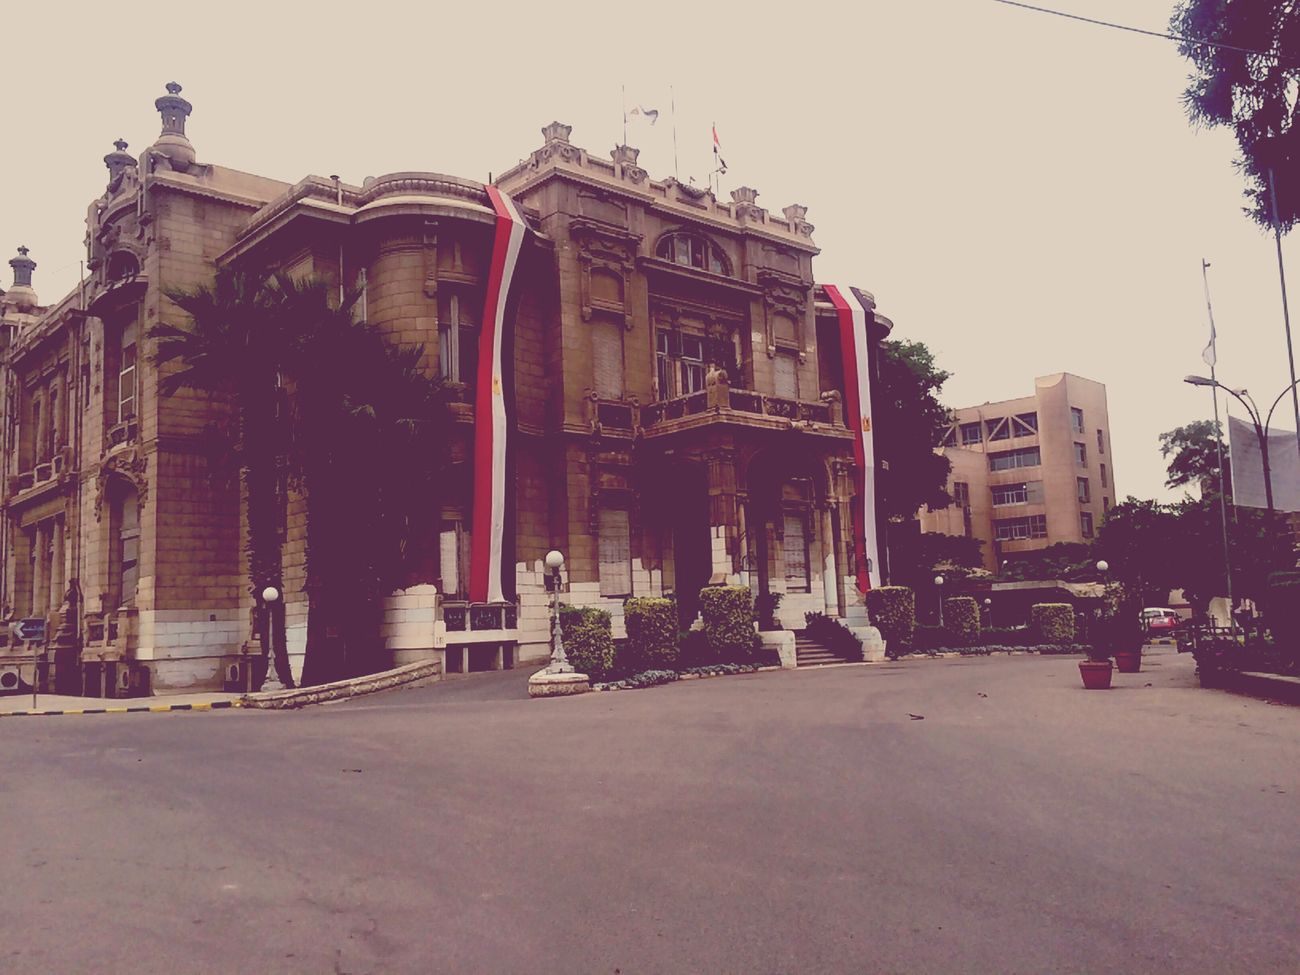 Building Old Buildings Structures Vintage Egypt Flag Construction Historical Building Great